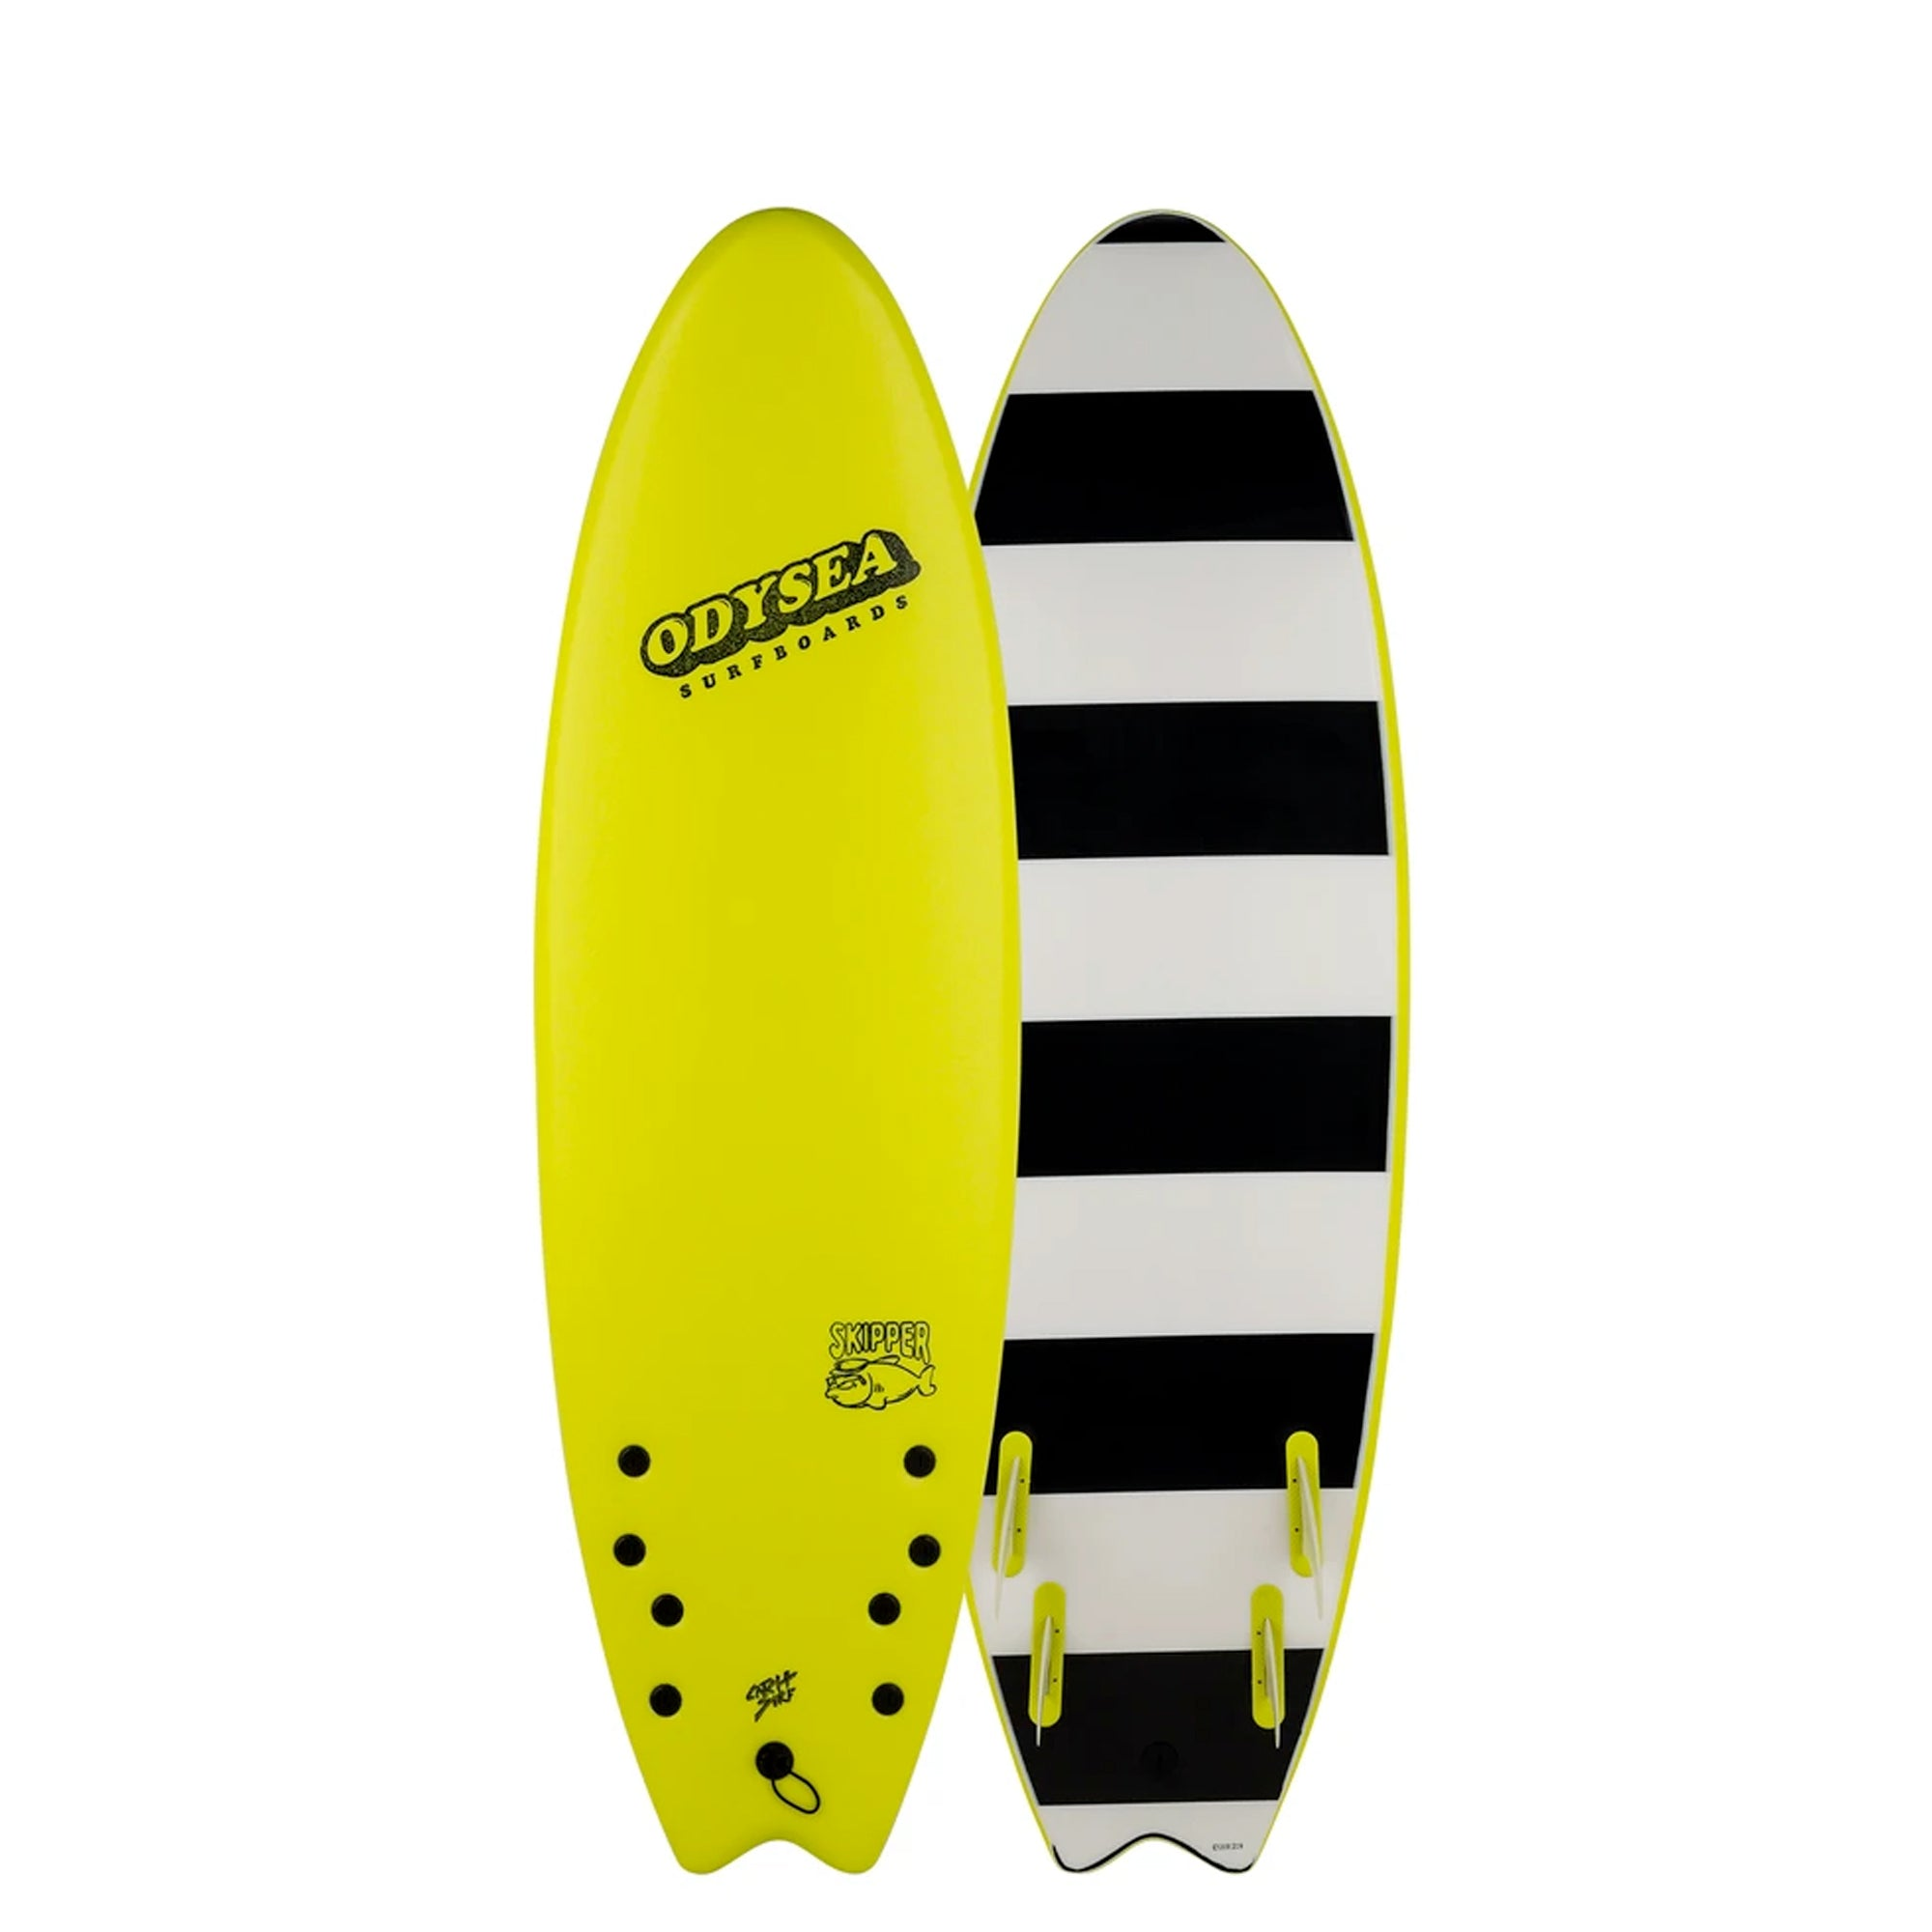 Catch Surf Odysea Skipper Quad 6'0 Soft Surfboard